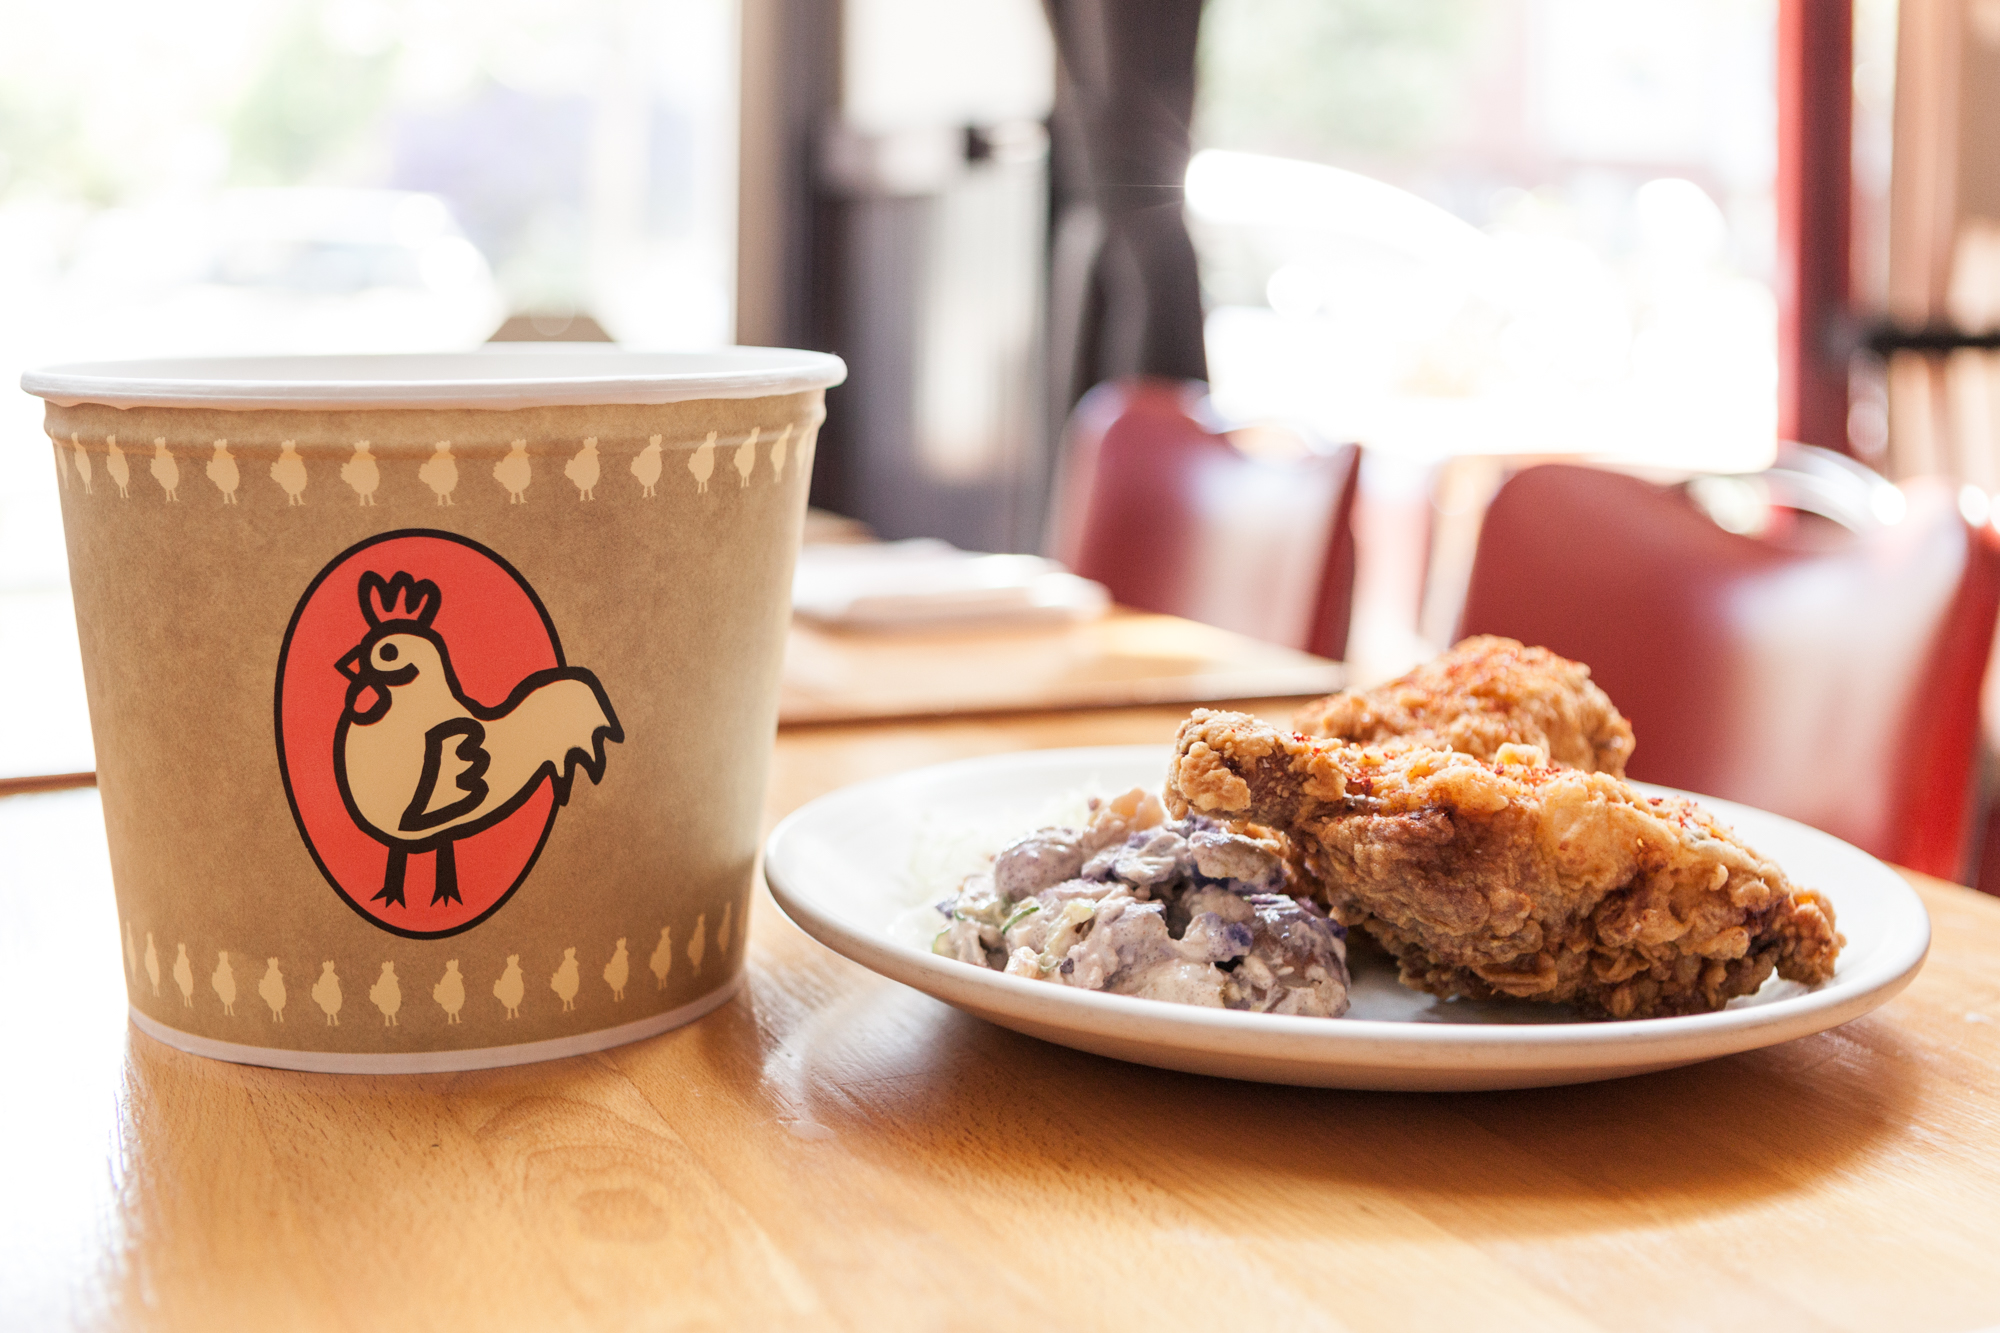 Fried chicken to go from Hopscotch